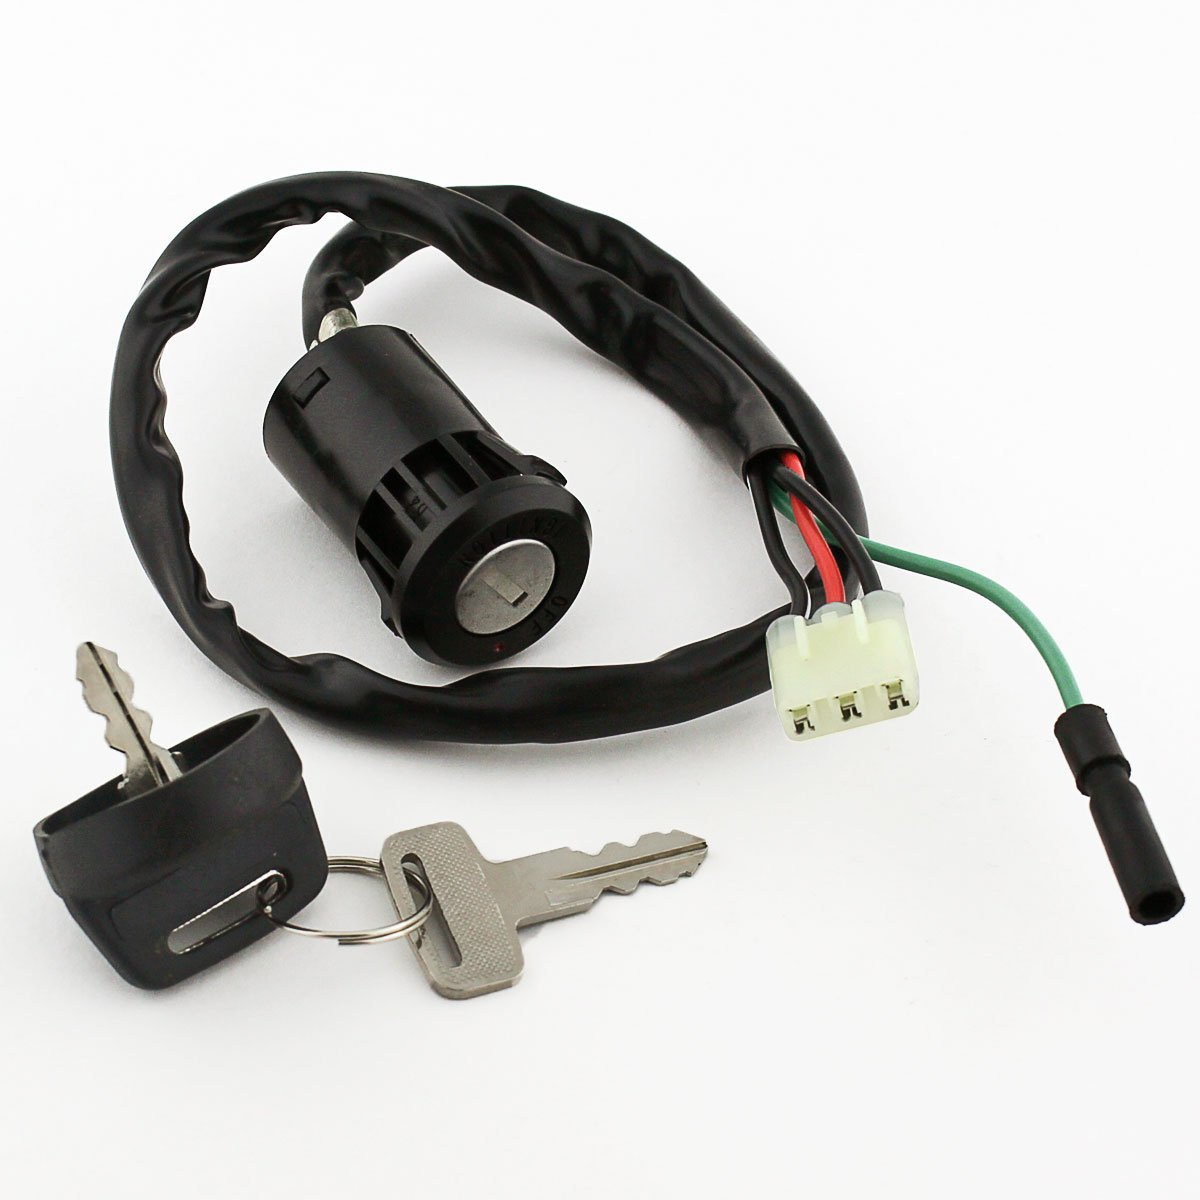 61MPI9QorRL._SL1200_ amazon com caltric ignition key switch fits honda 250 trx250 trx 1991 honda trx250x wiring diagram at creativeand.co